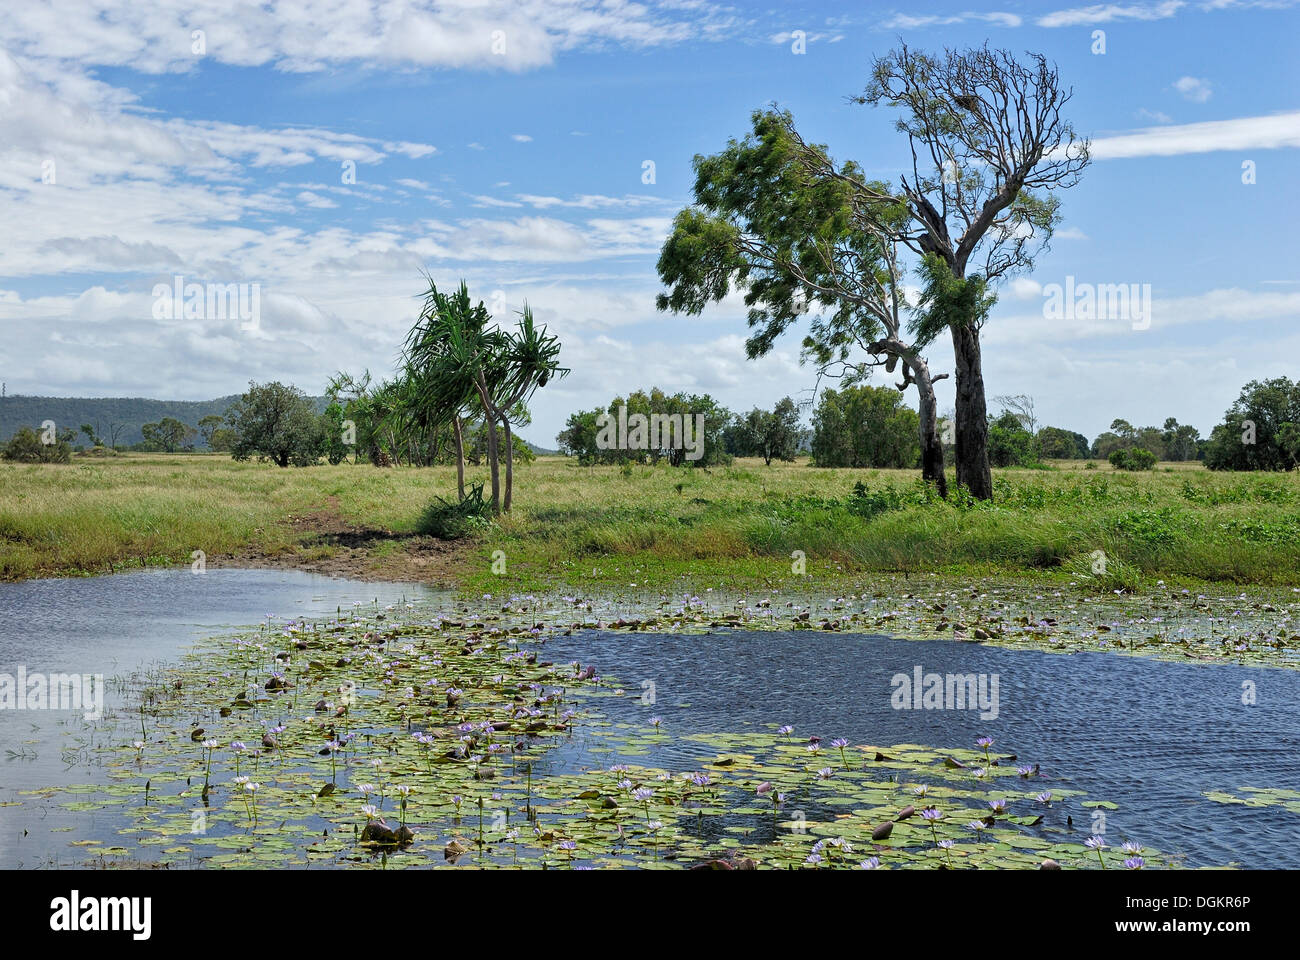 Livestock watering hole with Blue Egyptian Water Lilies or Sacred Blue Lilies (Nymphaea caerulea), Highway 1, Queensland - Stock Image